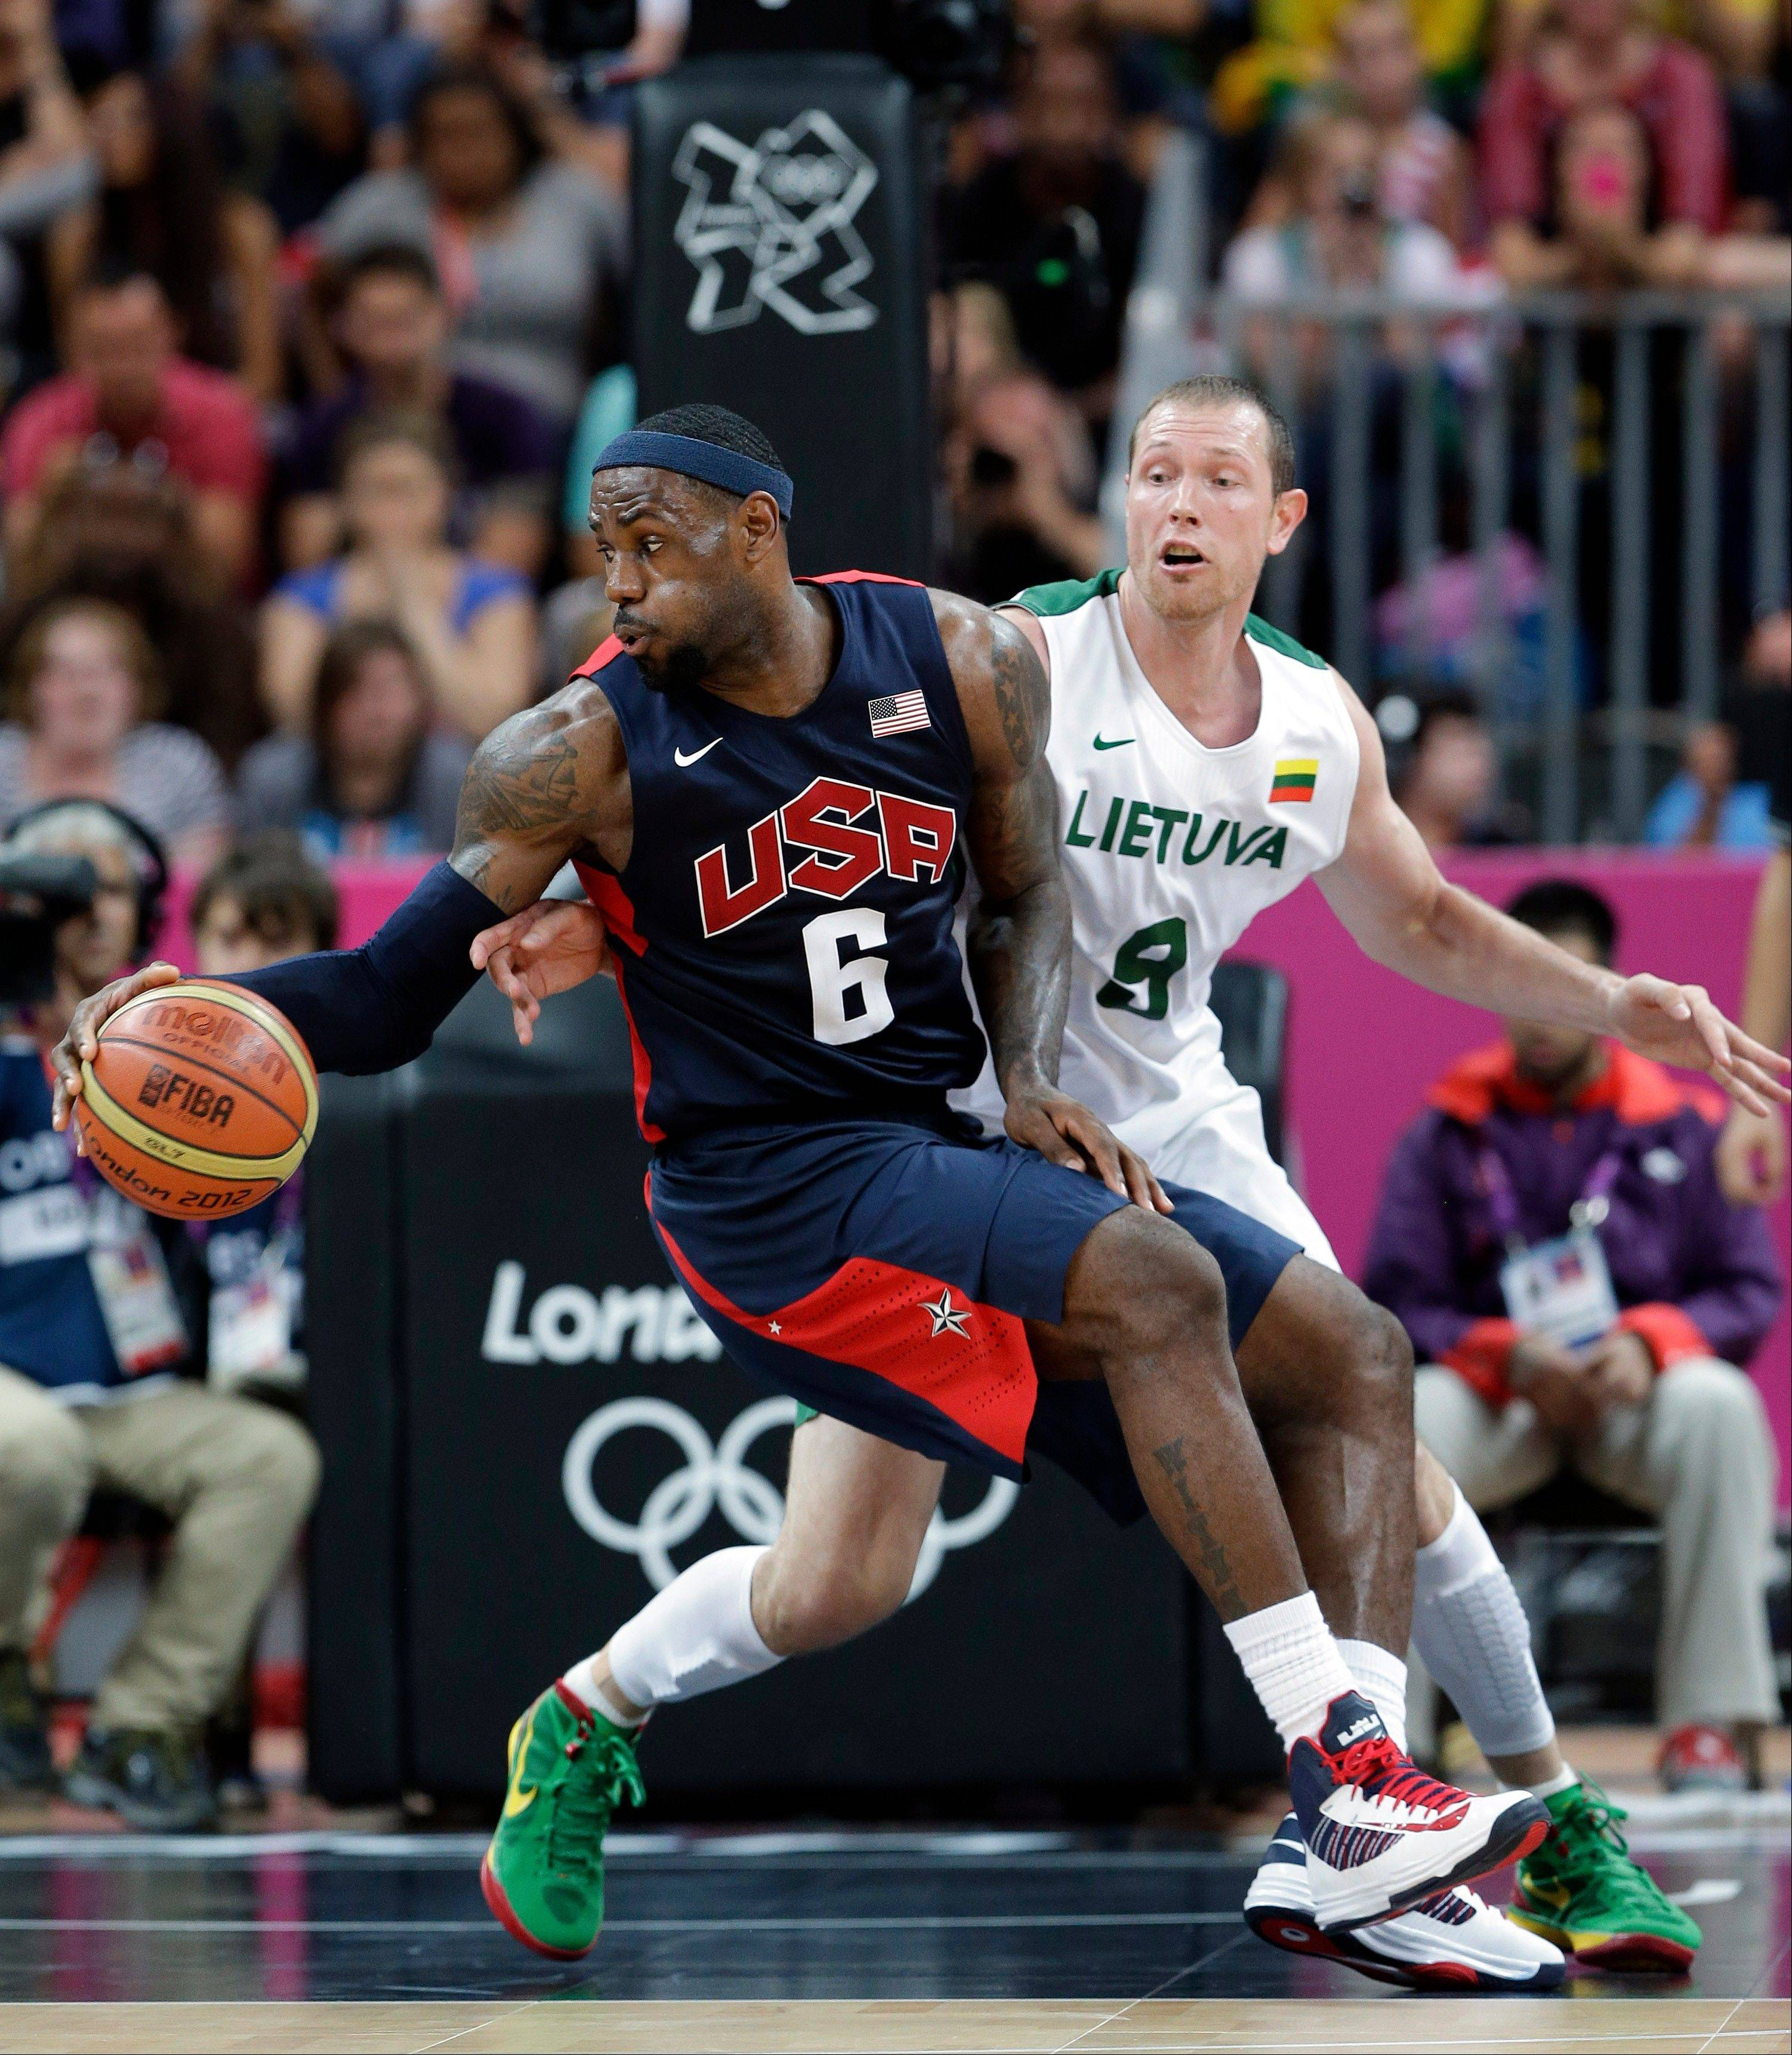 USA forward LeBron James works the ball past Lithuania's Renaldas Seibutis Saturday during a preliminary men's basketball game at the 2012 Summer Olympics.